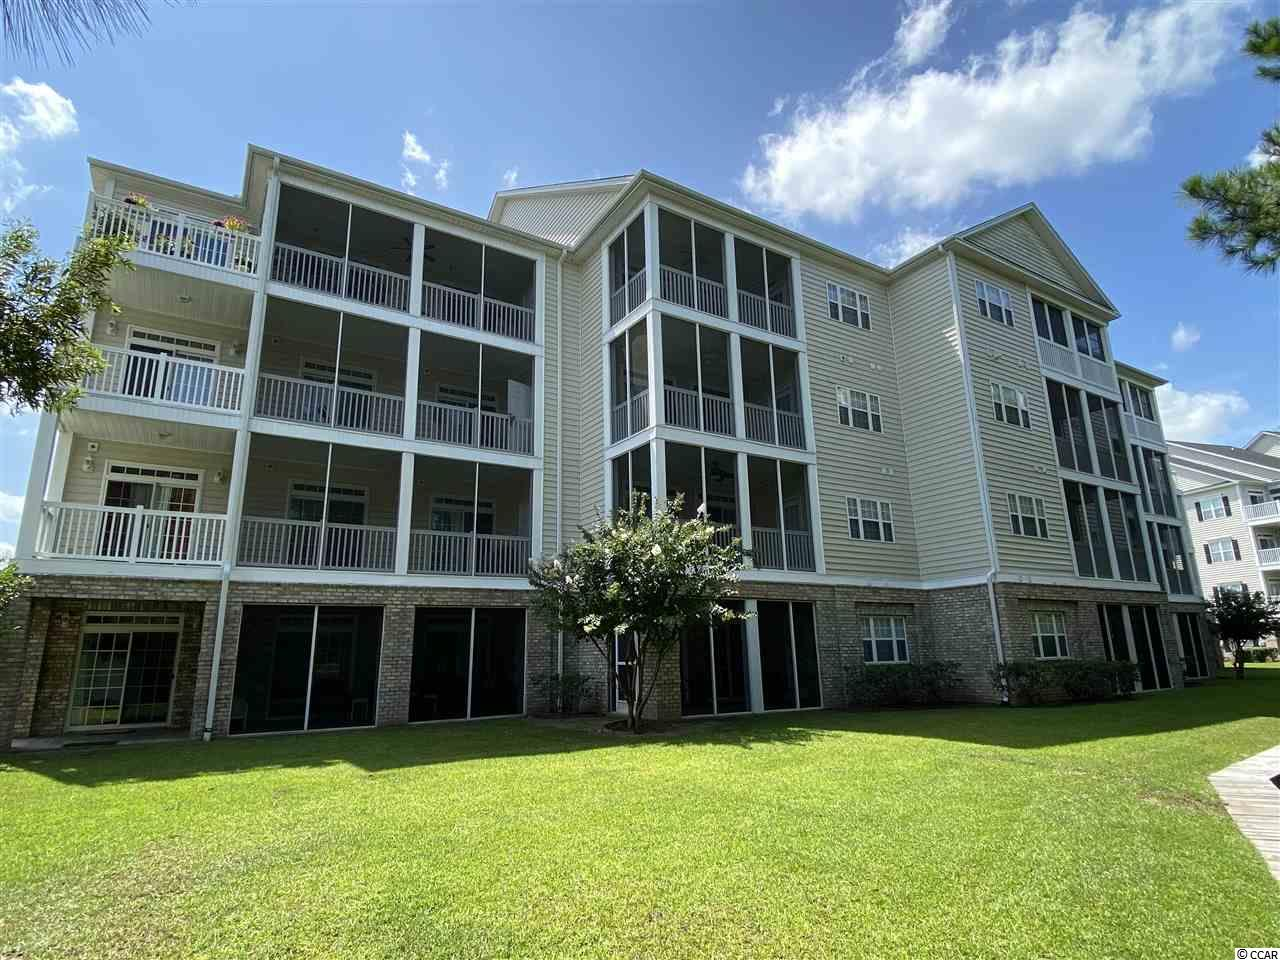 Gorgeous views from this lovely 3 bedroom, 2 bath condo located in the gated community of Villas @ International Club in Murrells Inlet.Fully furnished, move-in ready condo,  enter the condo into the foyer with crown molding and tile floors. Open floor plan with spacious living room with fan. Kitchen with white appliances, pantry, extra cabinets, tile and breakfast bar. Laundry room with washer & dryer that convey and storage closet. Split bedroom plan with large master bedroom with tray ceiling, crown molding, walk-in closet and windows overlooking the back yard. Master bath with tub/shower and crown molding. There are two good sized guest bedrooms at the front of condo. Both bedrooms have carpet and tray ceilings.  2 sliders from the living room lead to the screened in porch overlooking the tree-lined 13th fairway of the International Club Golf Course with lake/pond view. What a great way to start or end your day – sipping your favorite beverage and enjoying the peaceful views of the golf course and pond. The Villas @ International Club is a gated community with walking paths, ponds with fountains, gazebos and a great pool. Conveniently located, close to Huntington Beach State Park, Brookgreen Gardens, the Murrells Inlet Marsh Walk, dining, shopping, medical facilities and just a short drive to the beach! You can walk to the International Golf Course to take in a quick round of golf or enjoy breakfast or lunch at the clubhouse. Perfect for a primary home or vacation home, this condo is only a short drive to the beautiful blue Atlantic Ocean. Buyer is responsible for verifying all measurements and square footage.